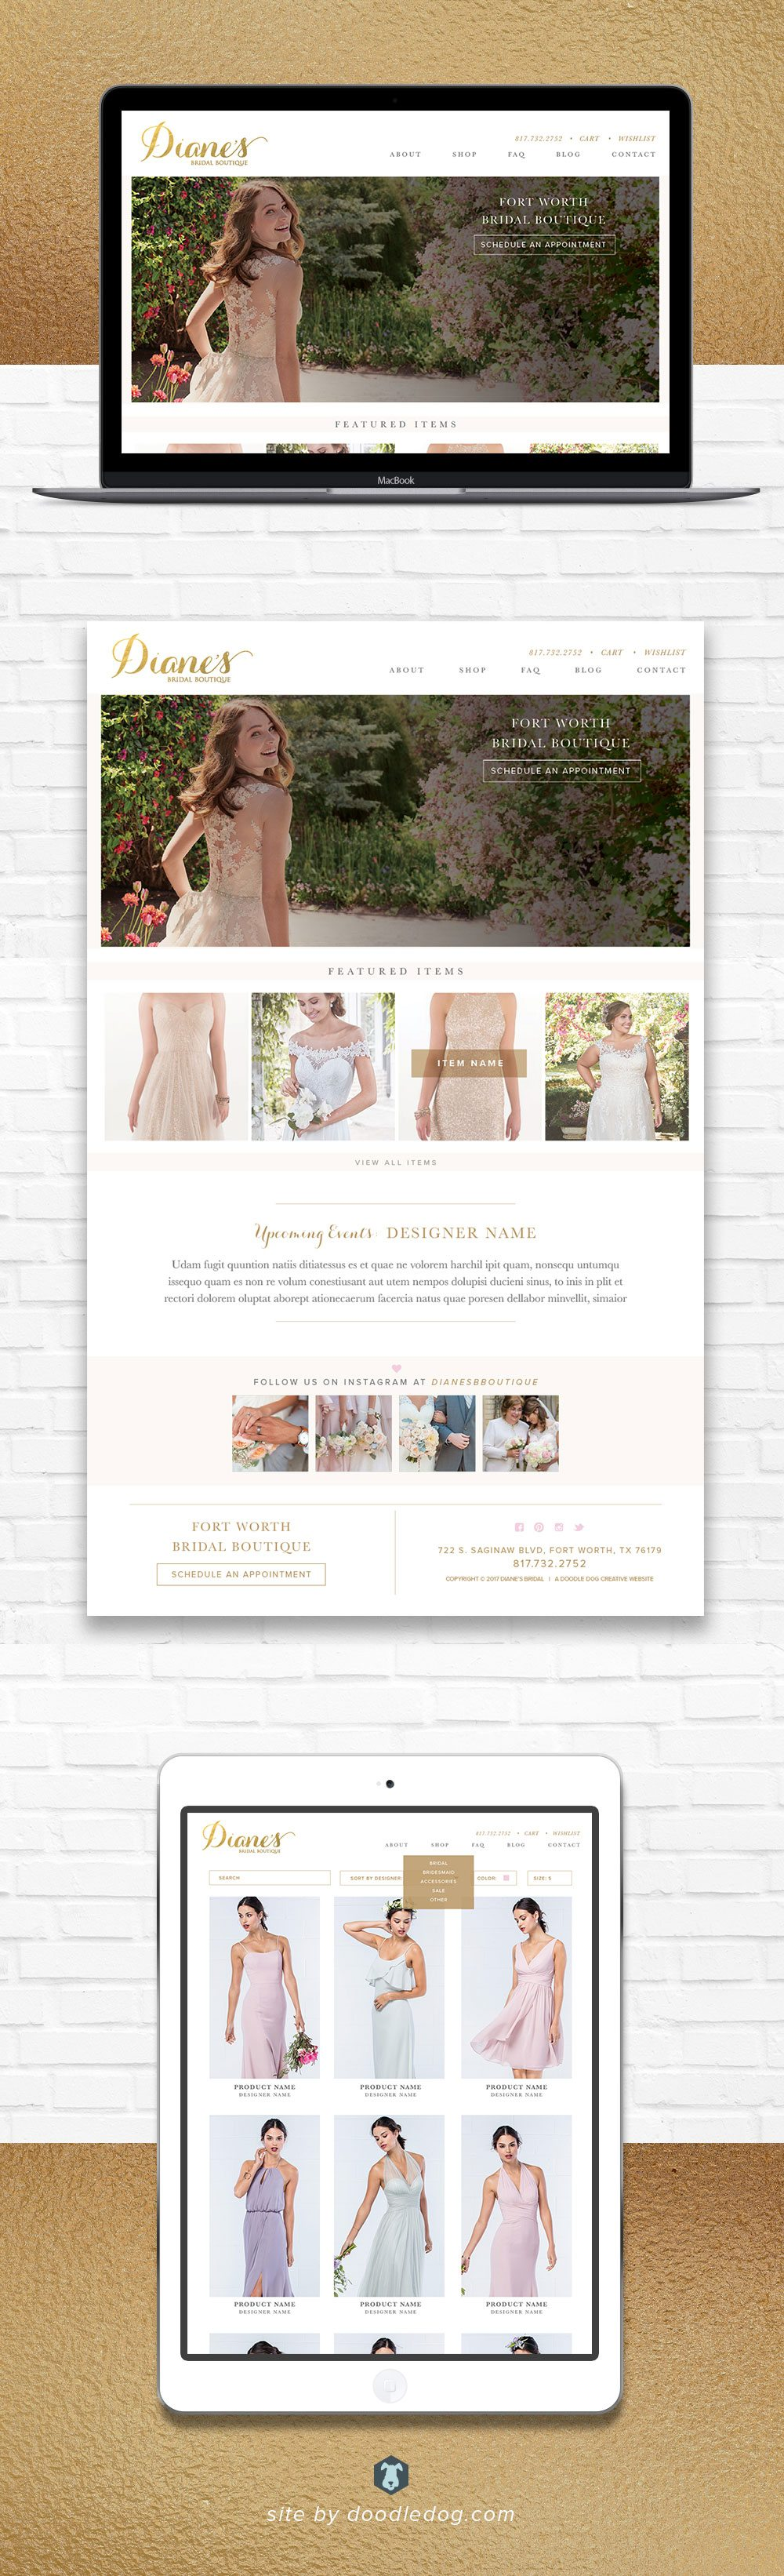 eCommerce Bridal Boutique Website Design